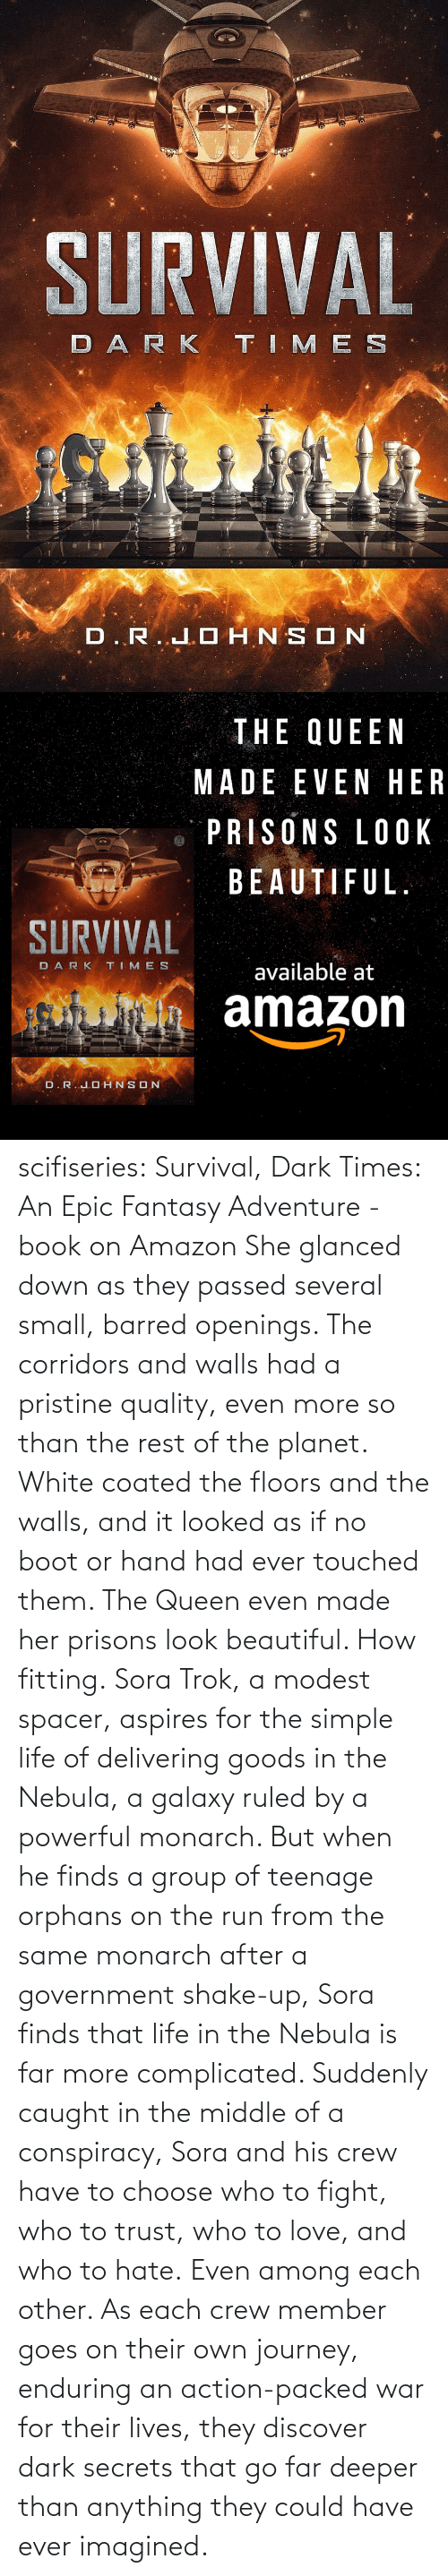 own: scifiseries: Survival, Dark Times: An Epic Fantasy Adventure - book on Amazon  She glanced down as they  passed several small, barred openings. The corridors and walls had a  pristine quality, even more so than the rest of the planet. White coated  the floors and the walls, and it looked as if no boot or hand had ever  touched them.  The Queen even made her prisons look beautiful.  How fitting. Sora  Trok, a modest spacer, aspires for the simple life of delivering goods  in the Nebula, a galaxy ruled by a powerful monarch. But when he finds a  group of teenage orphans on the run from the same monarch after a  government shake-up, Sora finds that life in the Nebula is far more complicated.  Suddenly  caught in the middle of a conspiracy, Sora and his crew have to choose  who to fight, who to trust, who to love, and who to hate. Even among each other.  As  each crew member goes on their own journey, enduring an action-packed  war for their lives, they discover dark secrets that go far deeper than  anything they could have ever imagined.